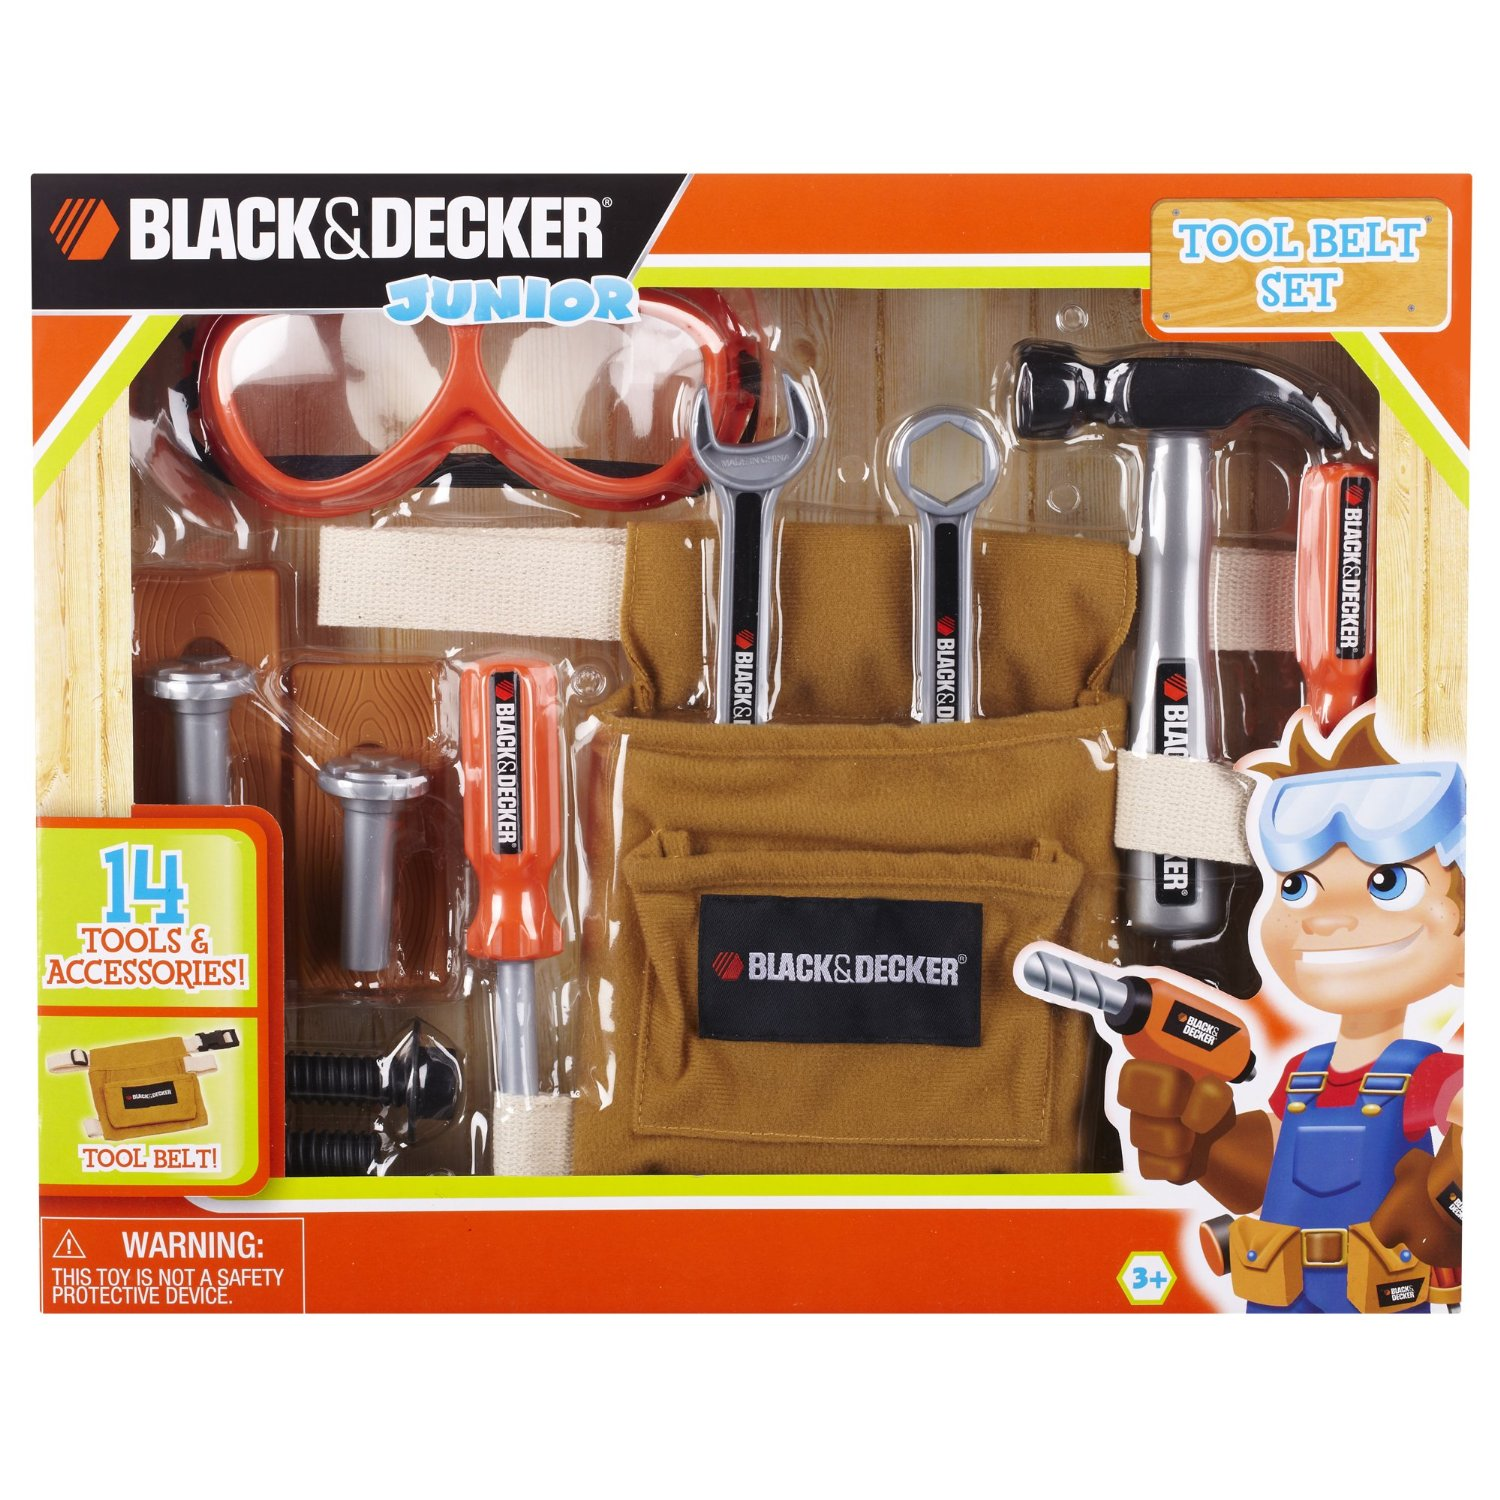 black & decker junior 14 piece toy tool belt set, it's time to get ...